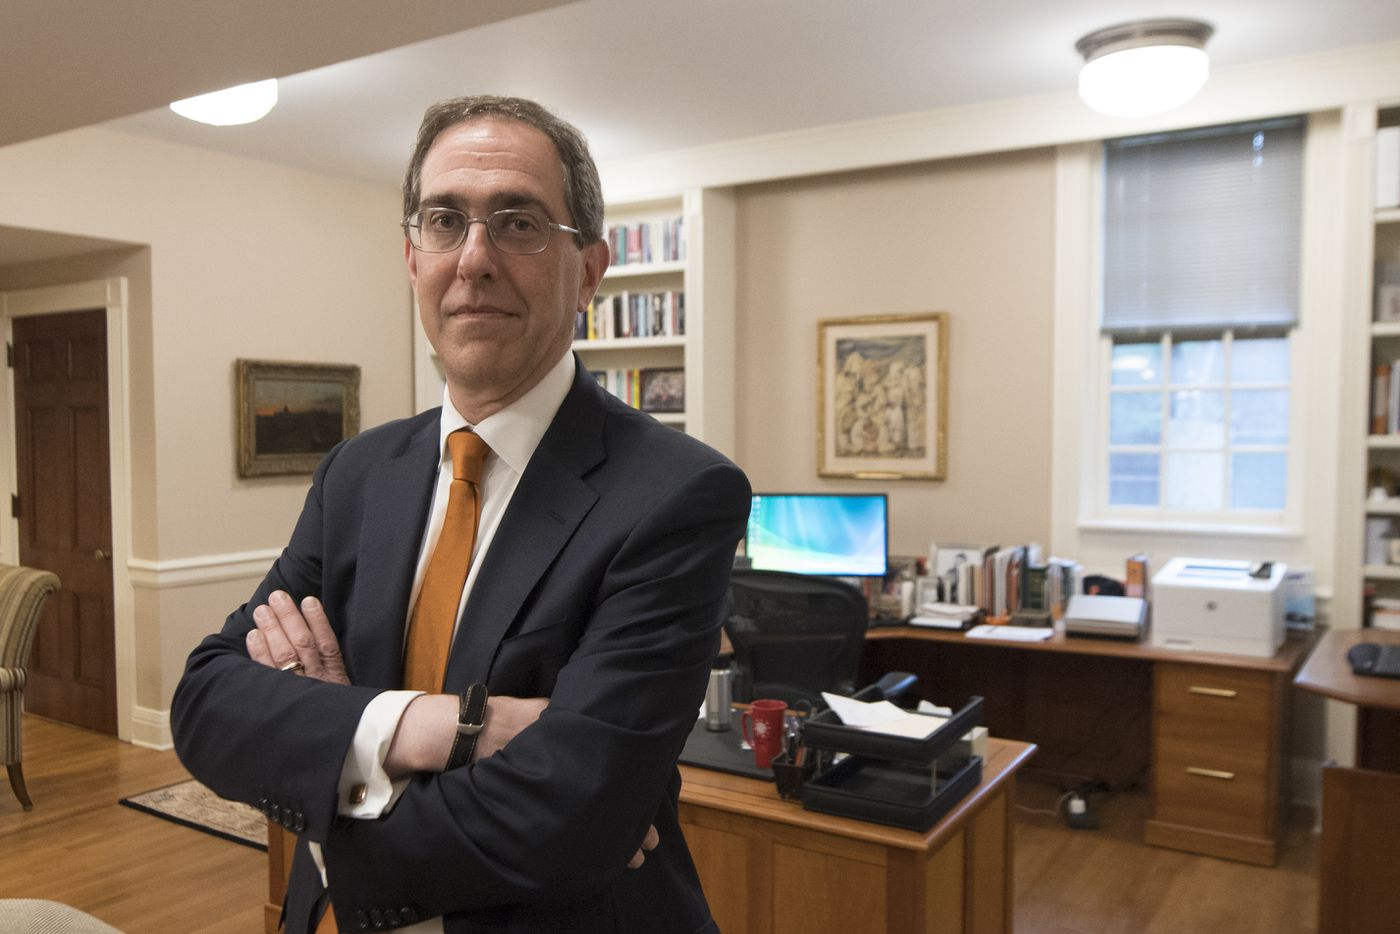 Princeton's complicated legacy: Reconsidering Woodrow Wilson